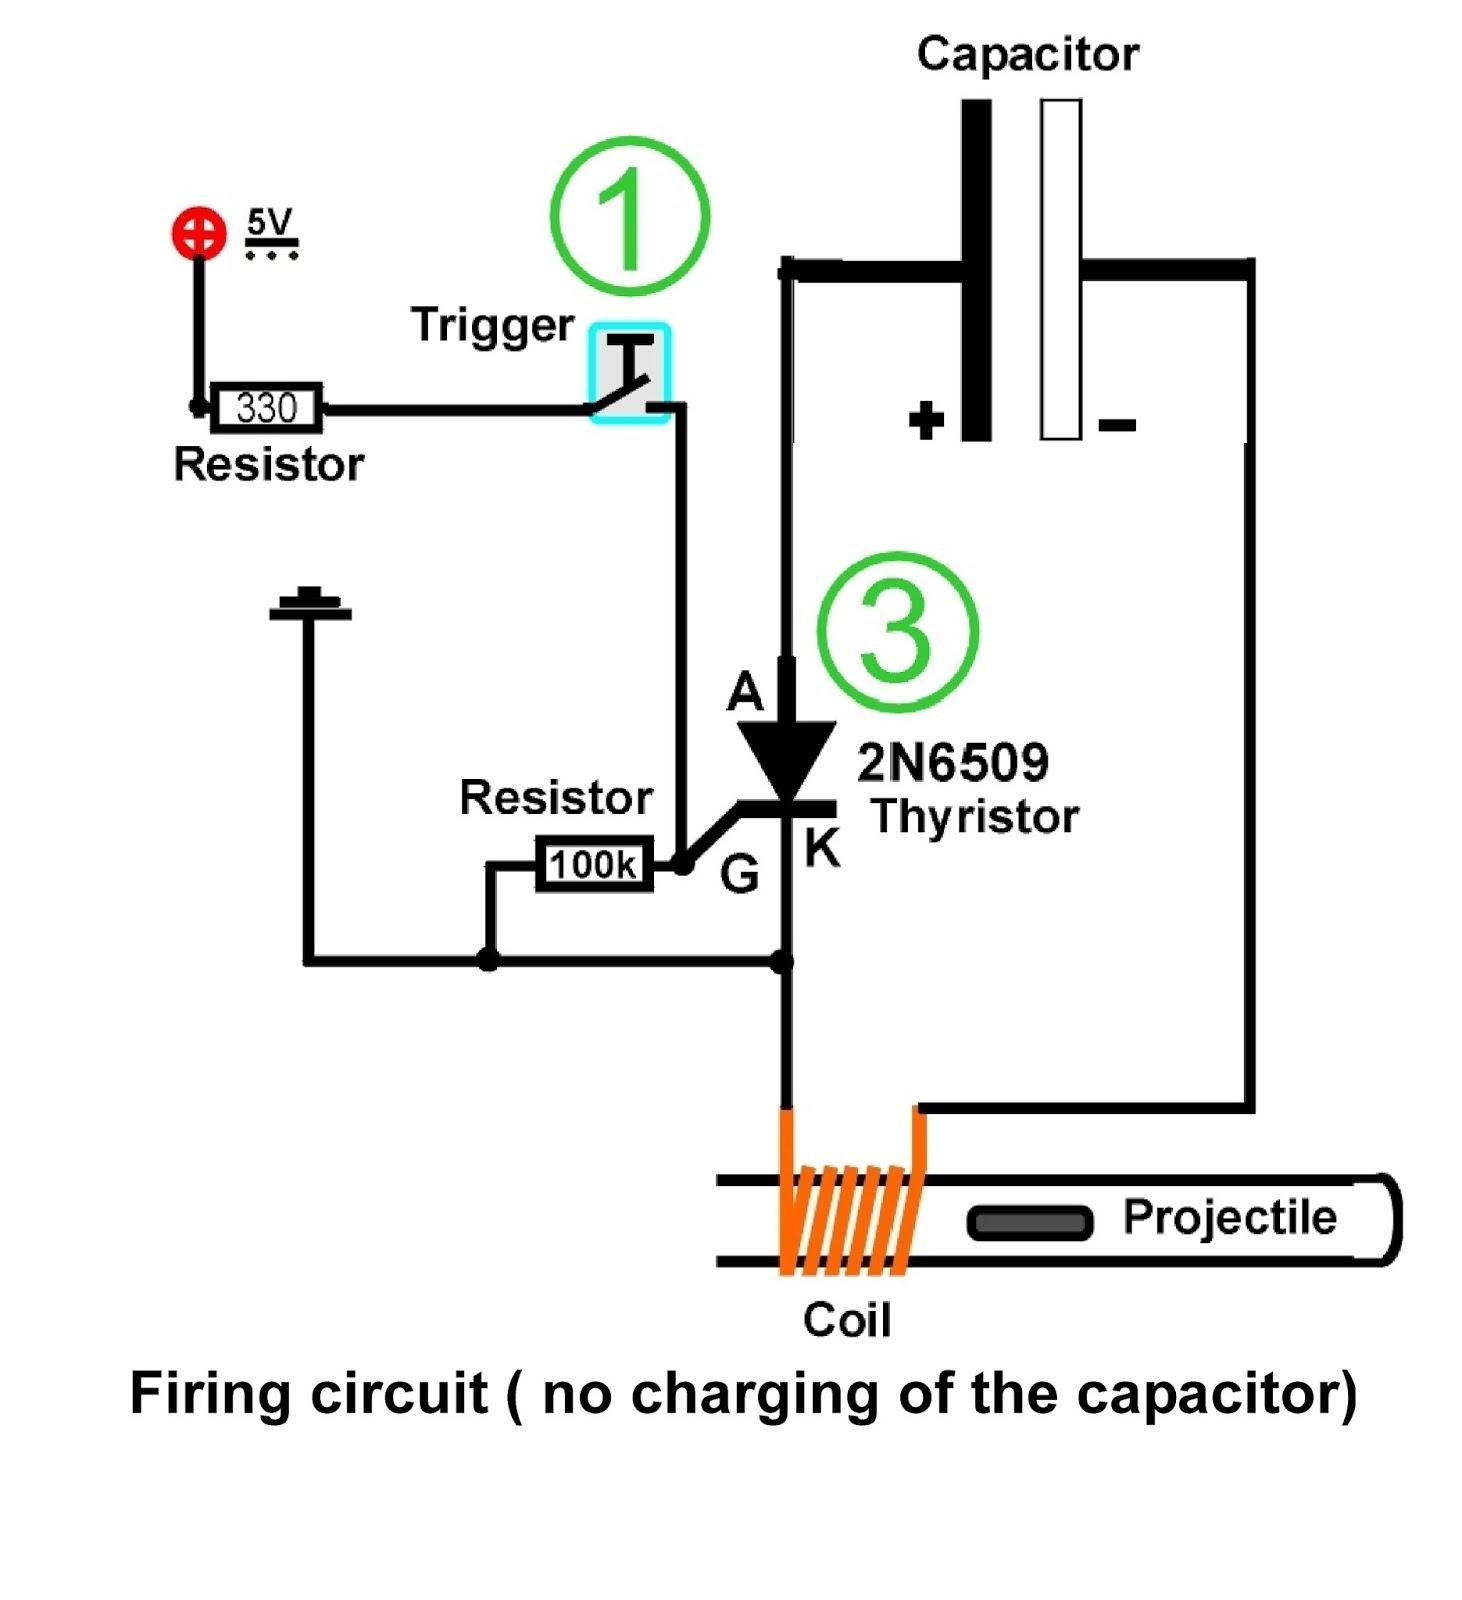 Nowonlineshoping blogspot together with Home Wiring Diagrams Wiring Diagrams Typical Alarm System Wiring in addition Product product id 62 likewise Basic Electrical Symbols further Alternator Diode Wiring. on how to charge a capacitor with test light